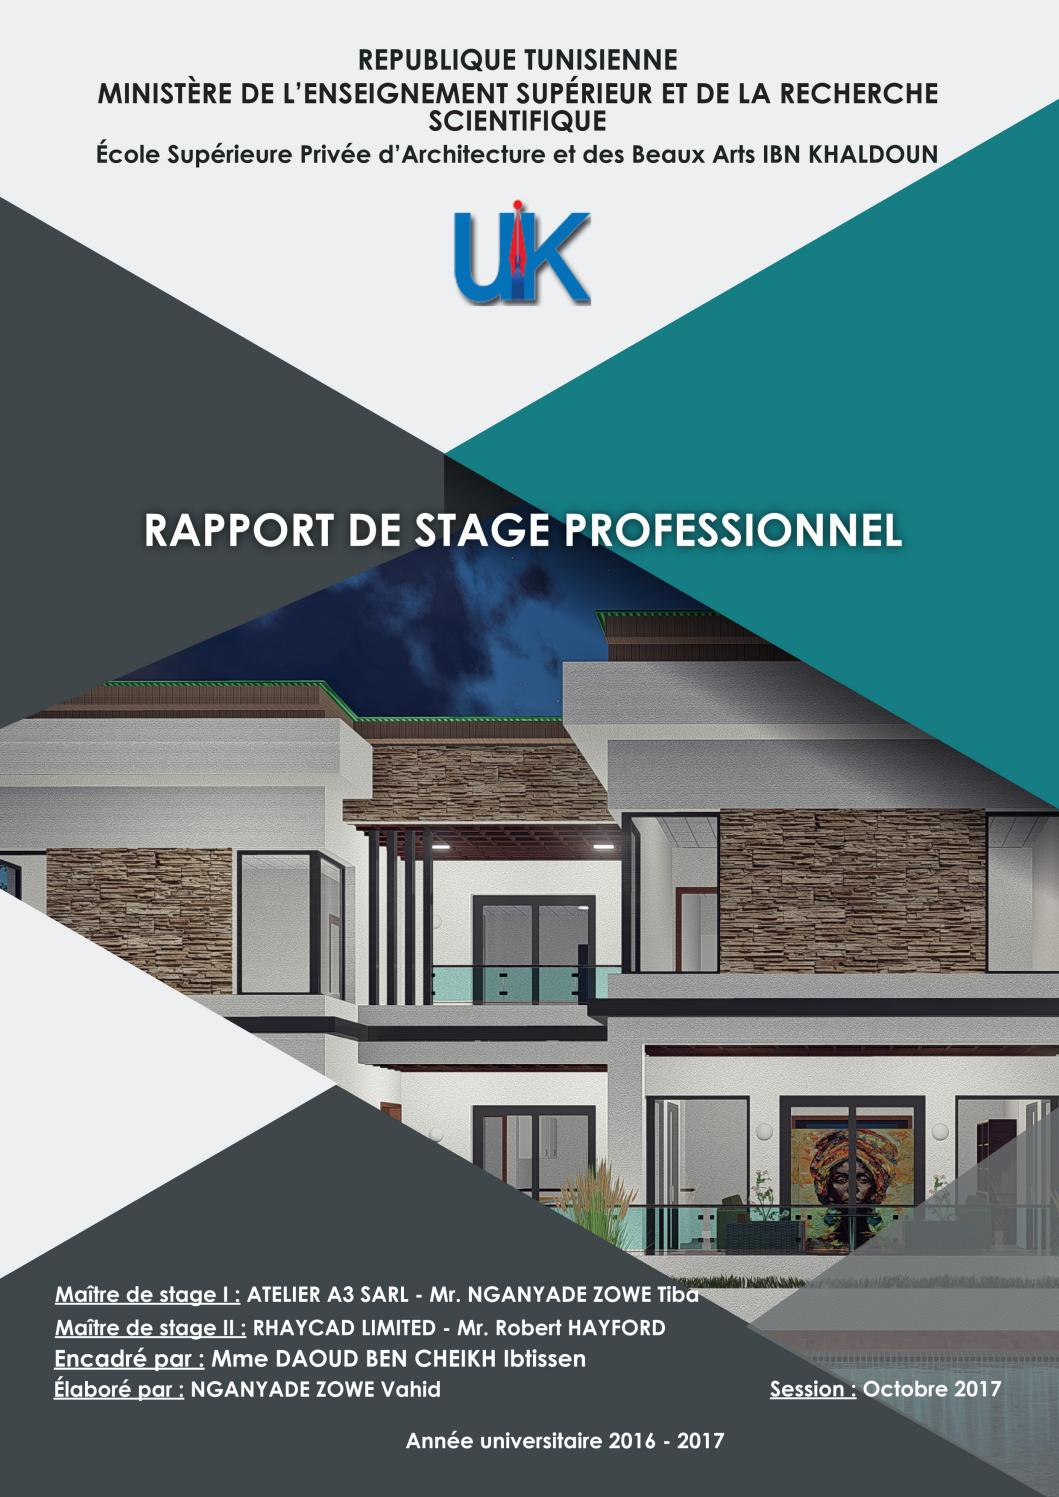 RAPPORT DE STAGE PROFESSIONNEL By KA Architecture Issuu